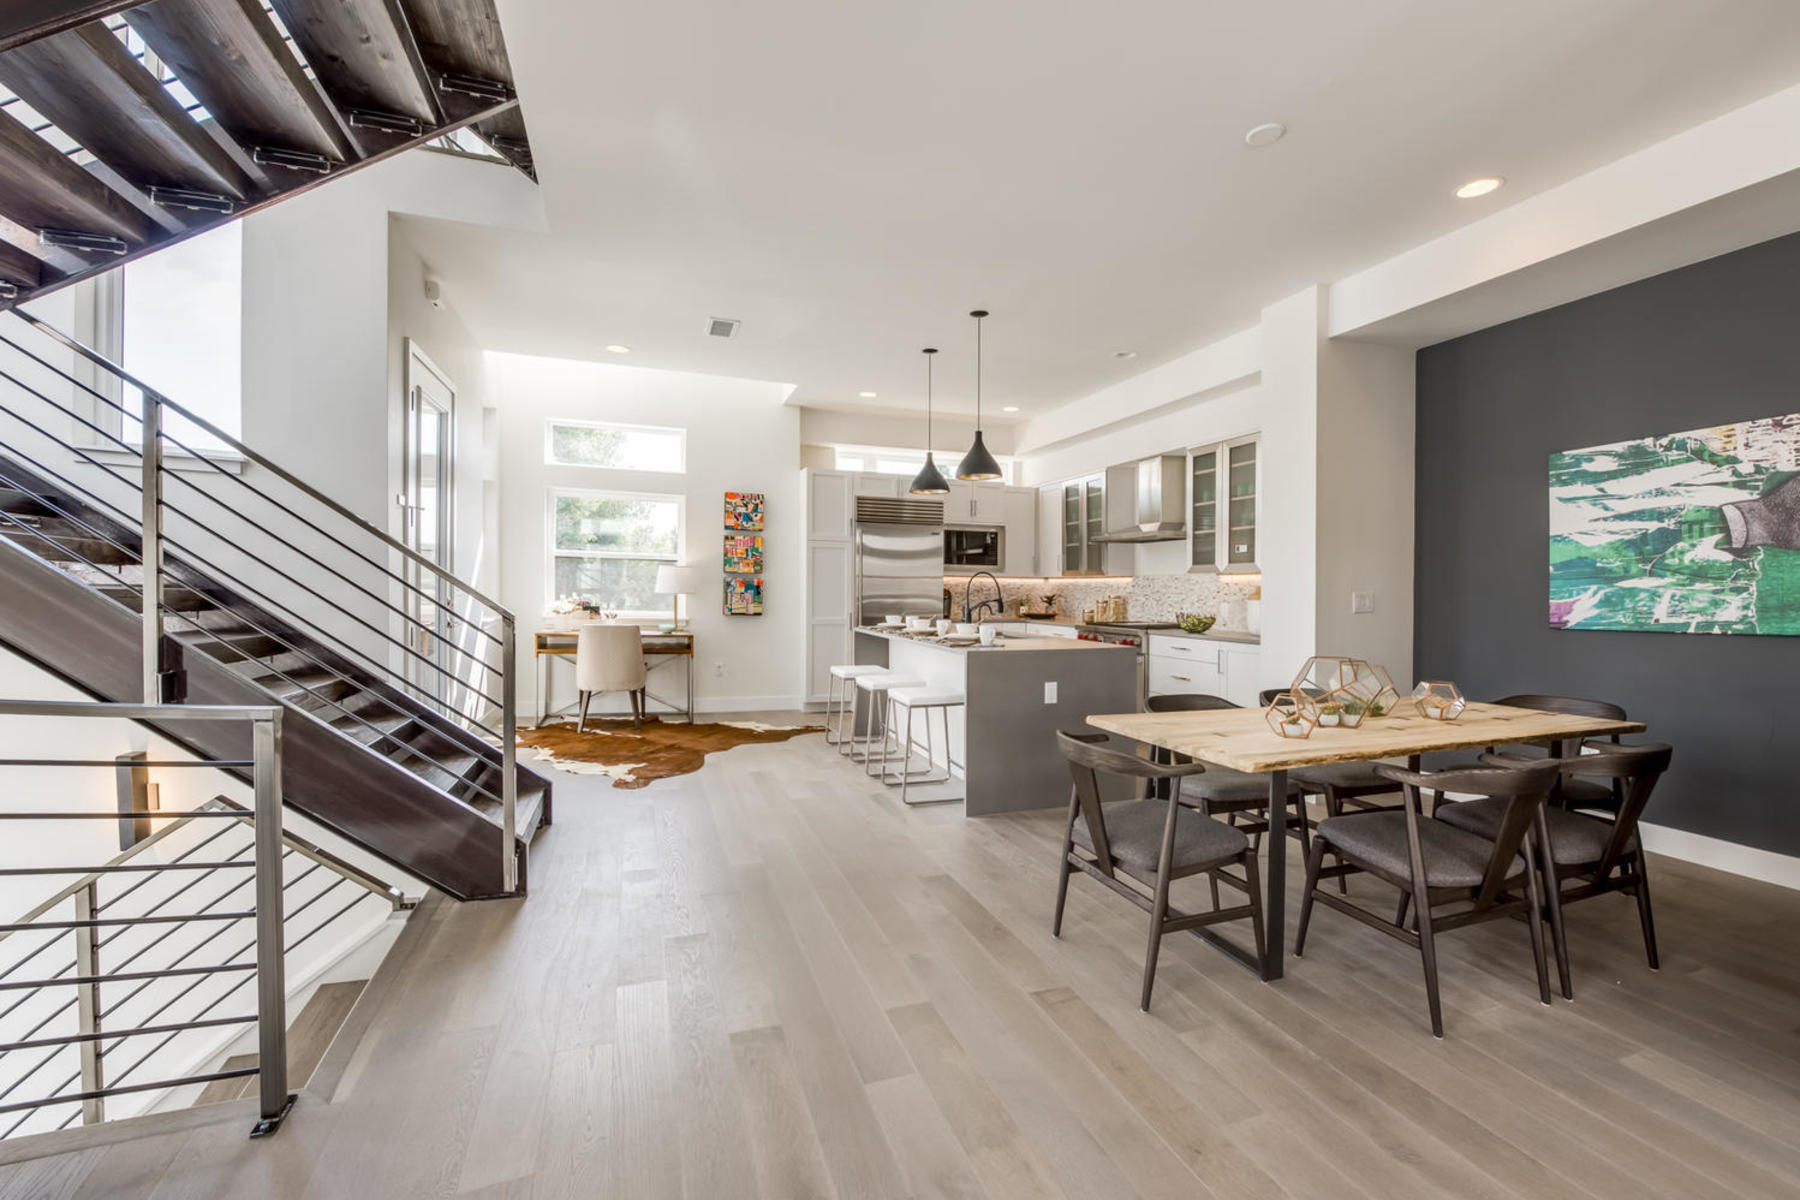 Townhouse for Active at SPROCKET DESIGNED TOWNHOMES FEATURING EXPANSIVE ROOFTOP DECK 4064 West 16th Avenue Denver, Colorado 80204 United States